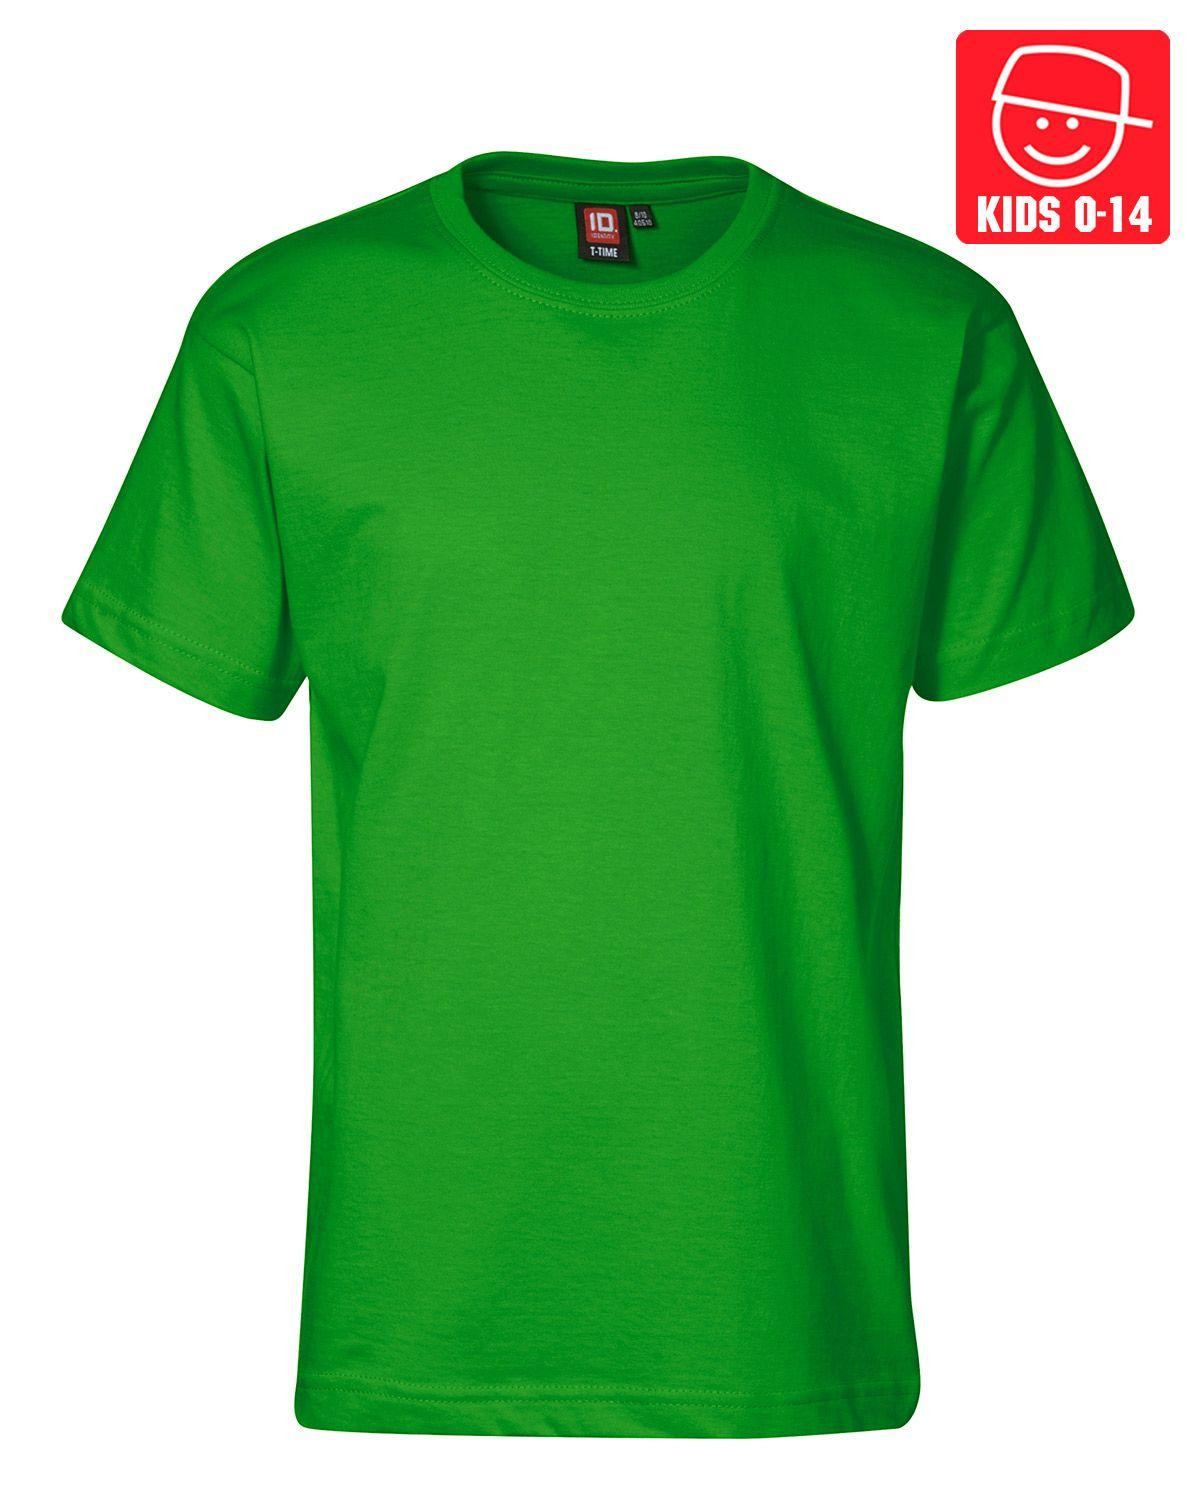 Image of   ID T-TIME T-shirt (Grøn, 122)